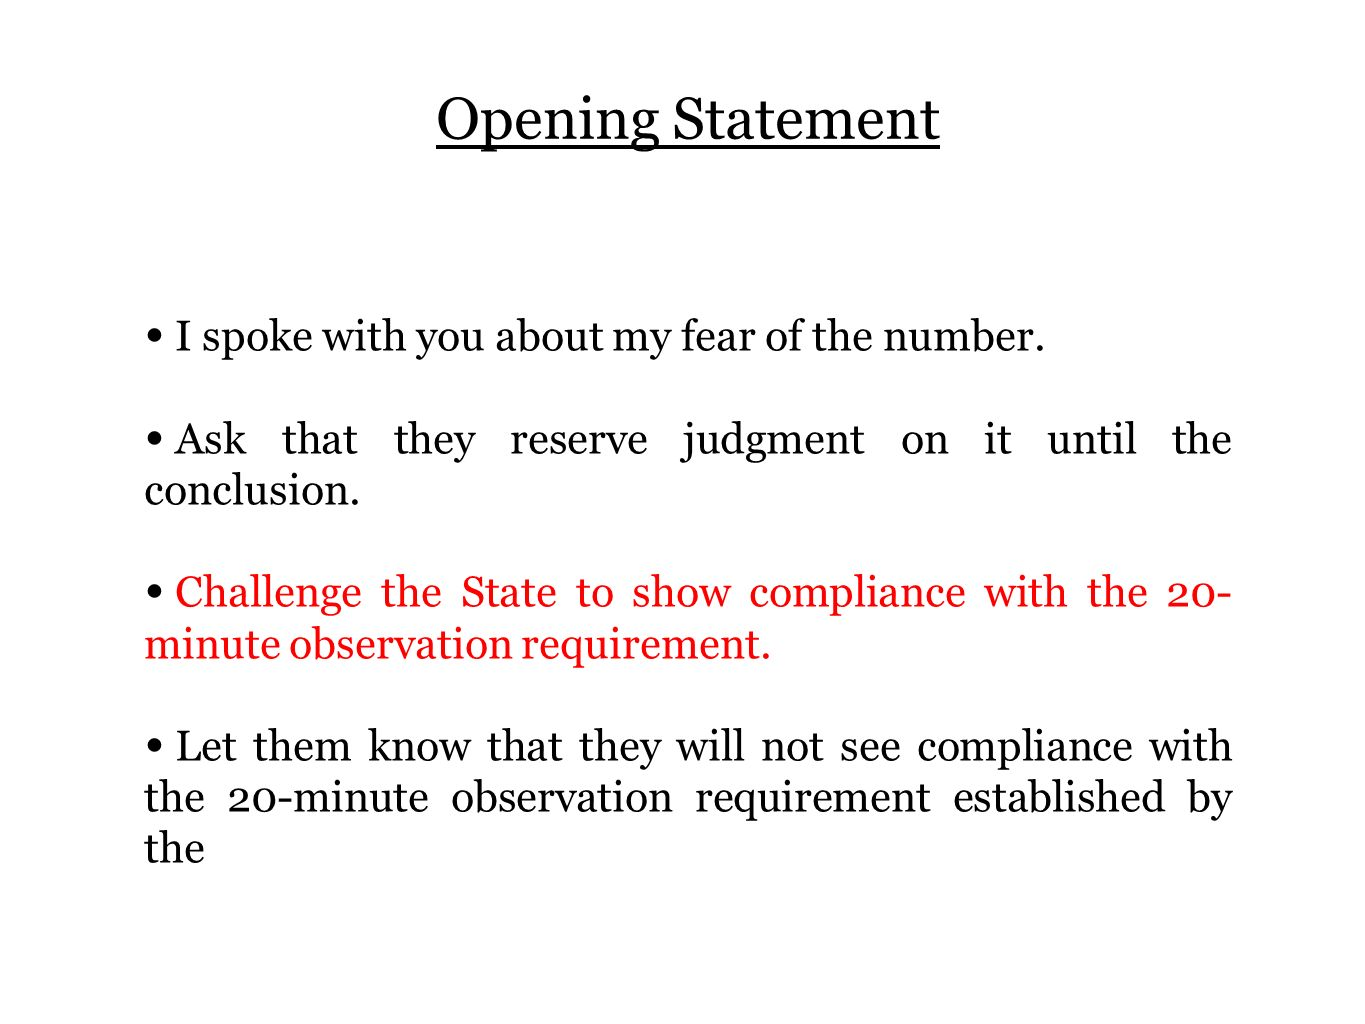 Opening Statement I spoke with you about my fear of the number. Ask that they reserve judgment on it until the conclusion. Challenge the State to show